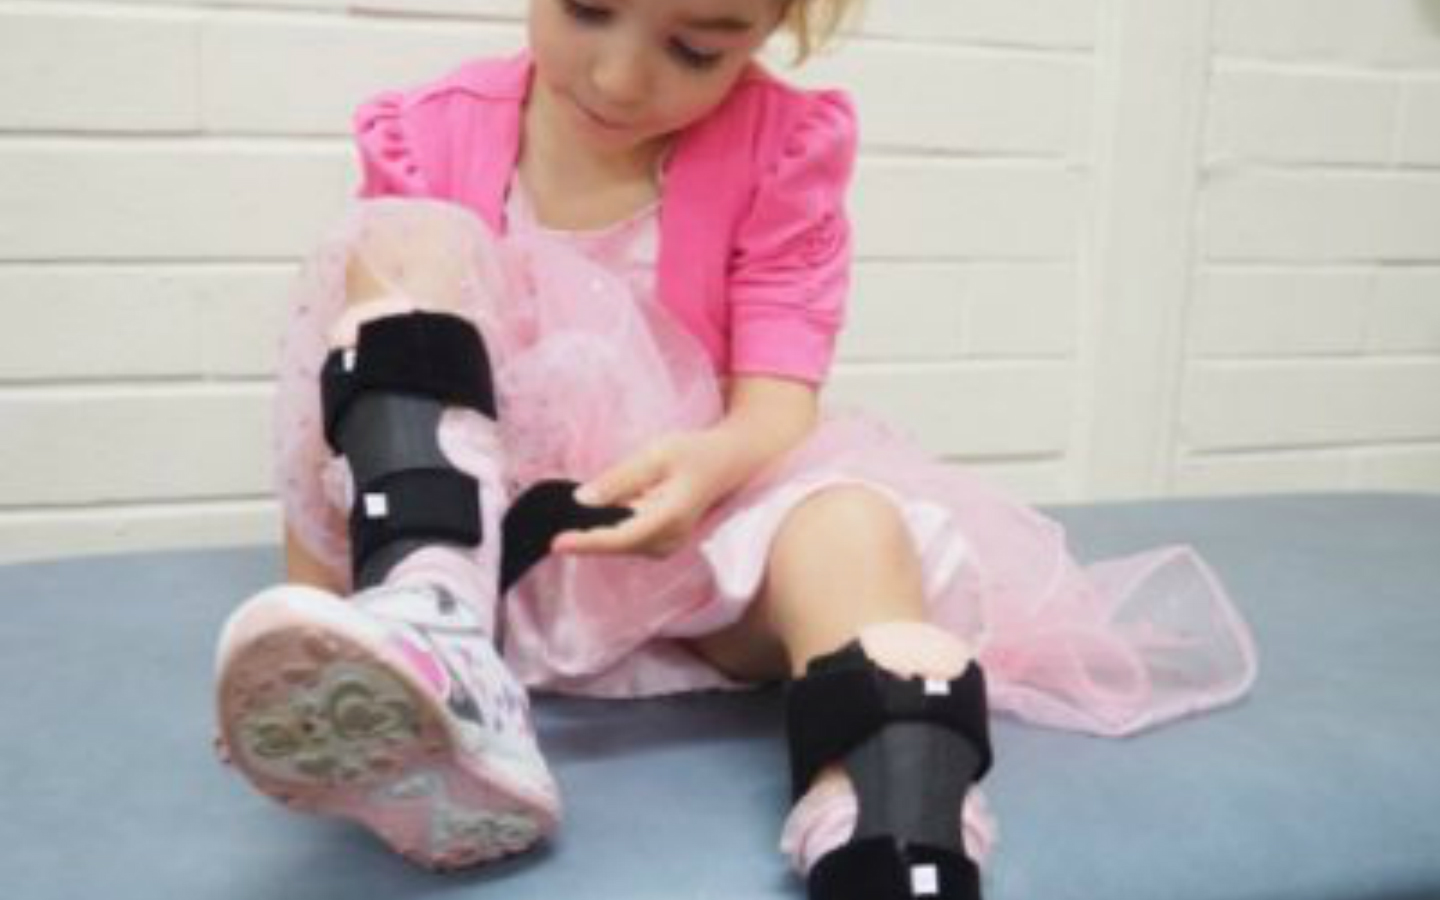 Young girl in pink dress, sitting down and putting on her ankle foot orthotic